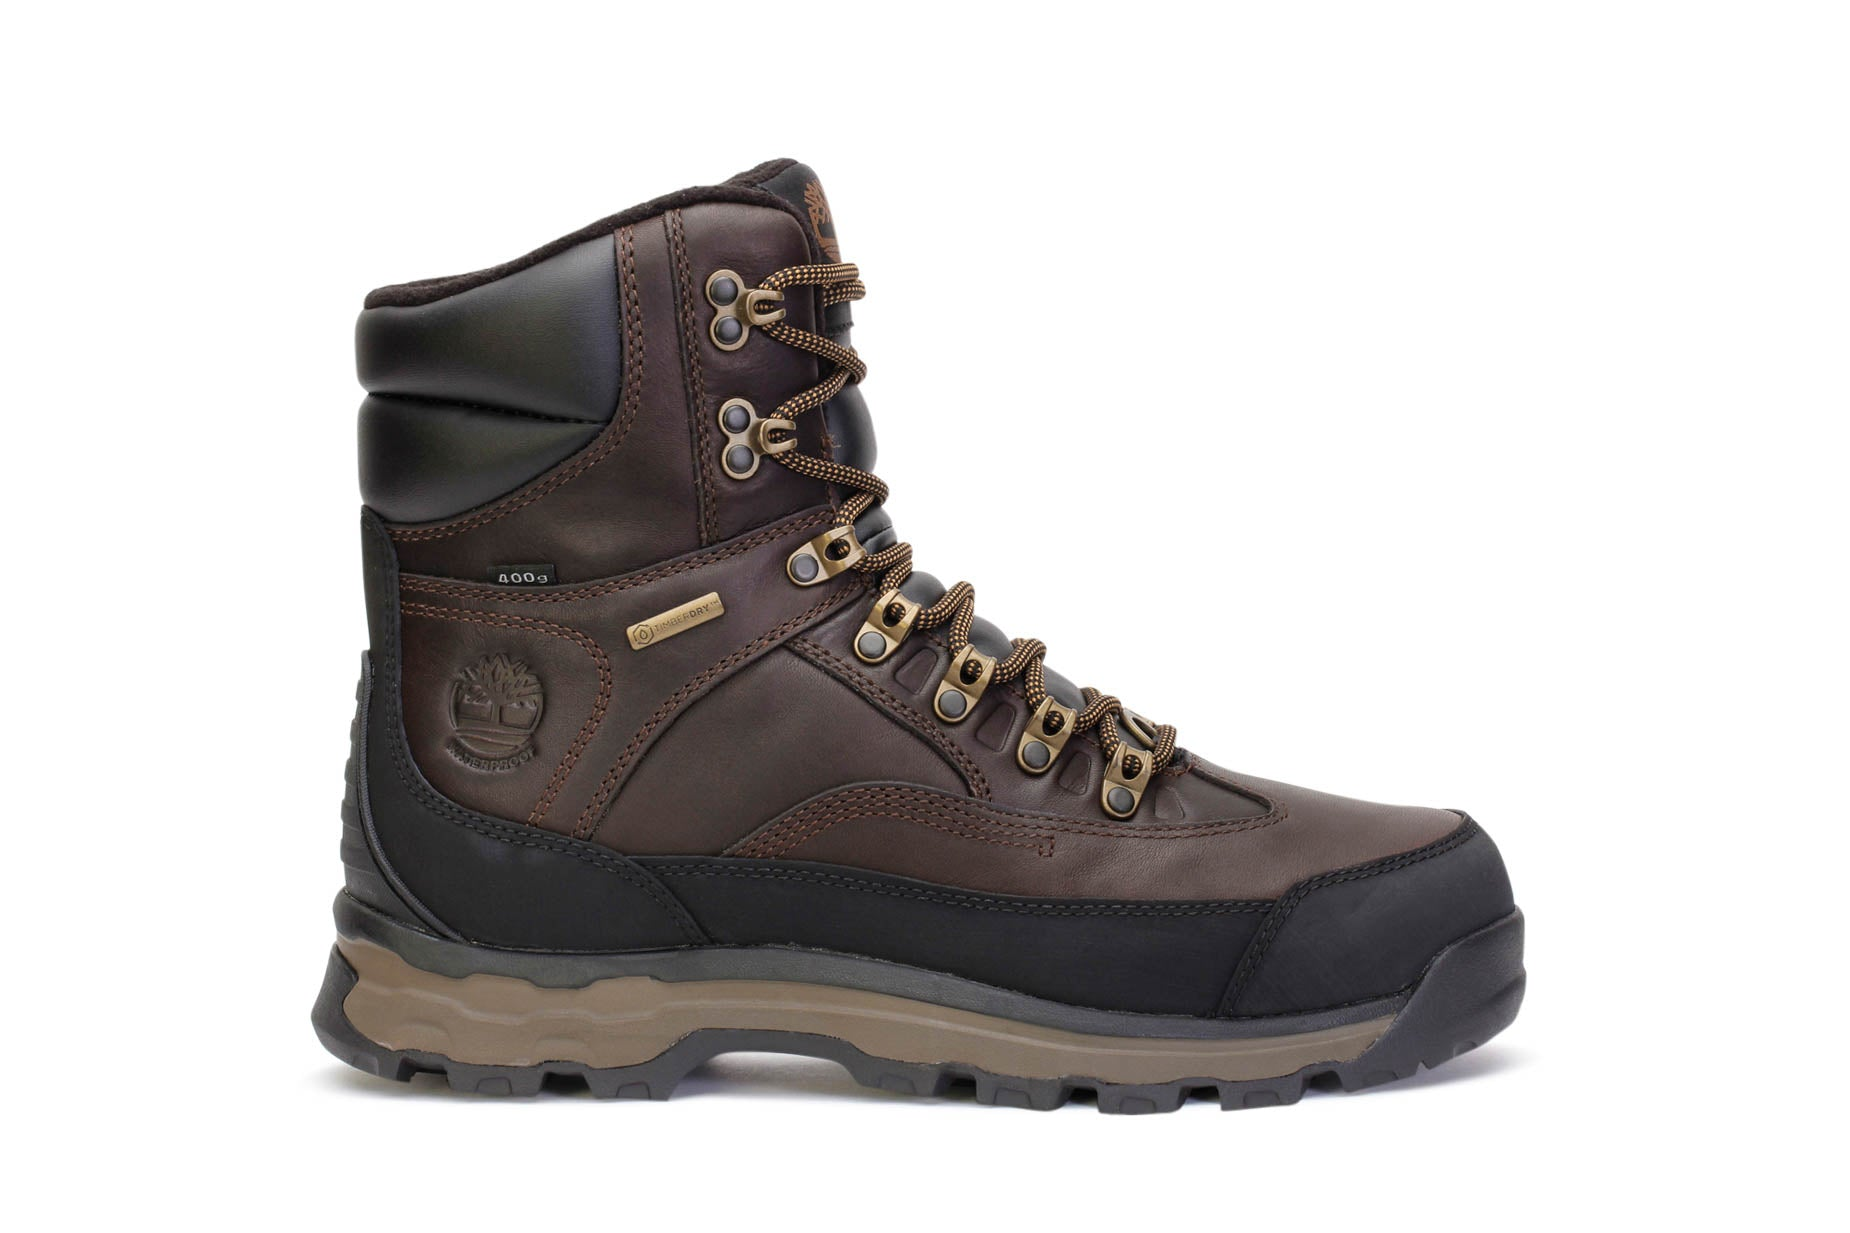 timberland-mens-8-chocorua-trail-2-0-waterproof-boots-dk-brown-mulch-a1h6wa-main